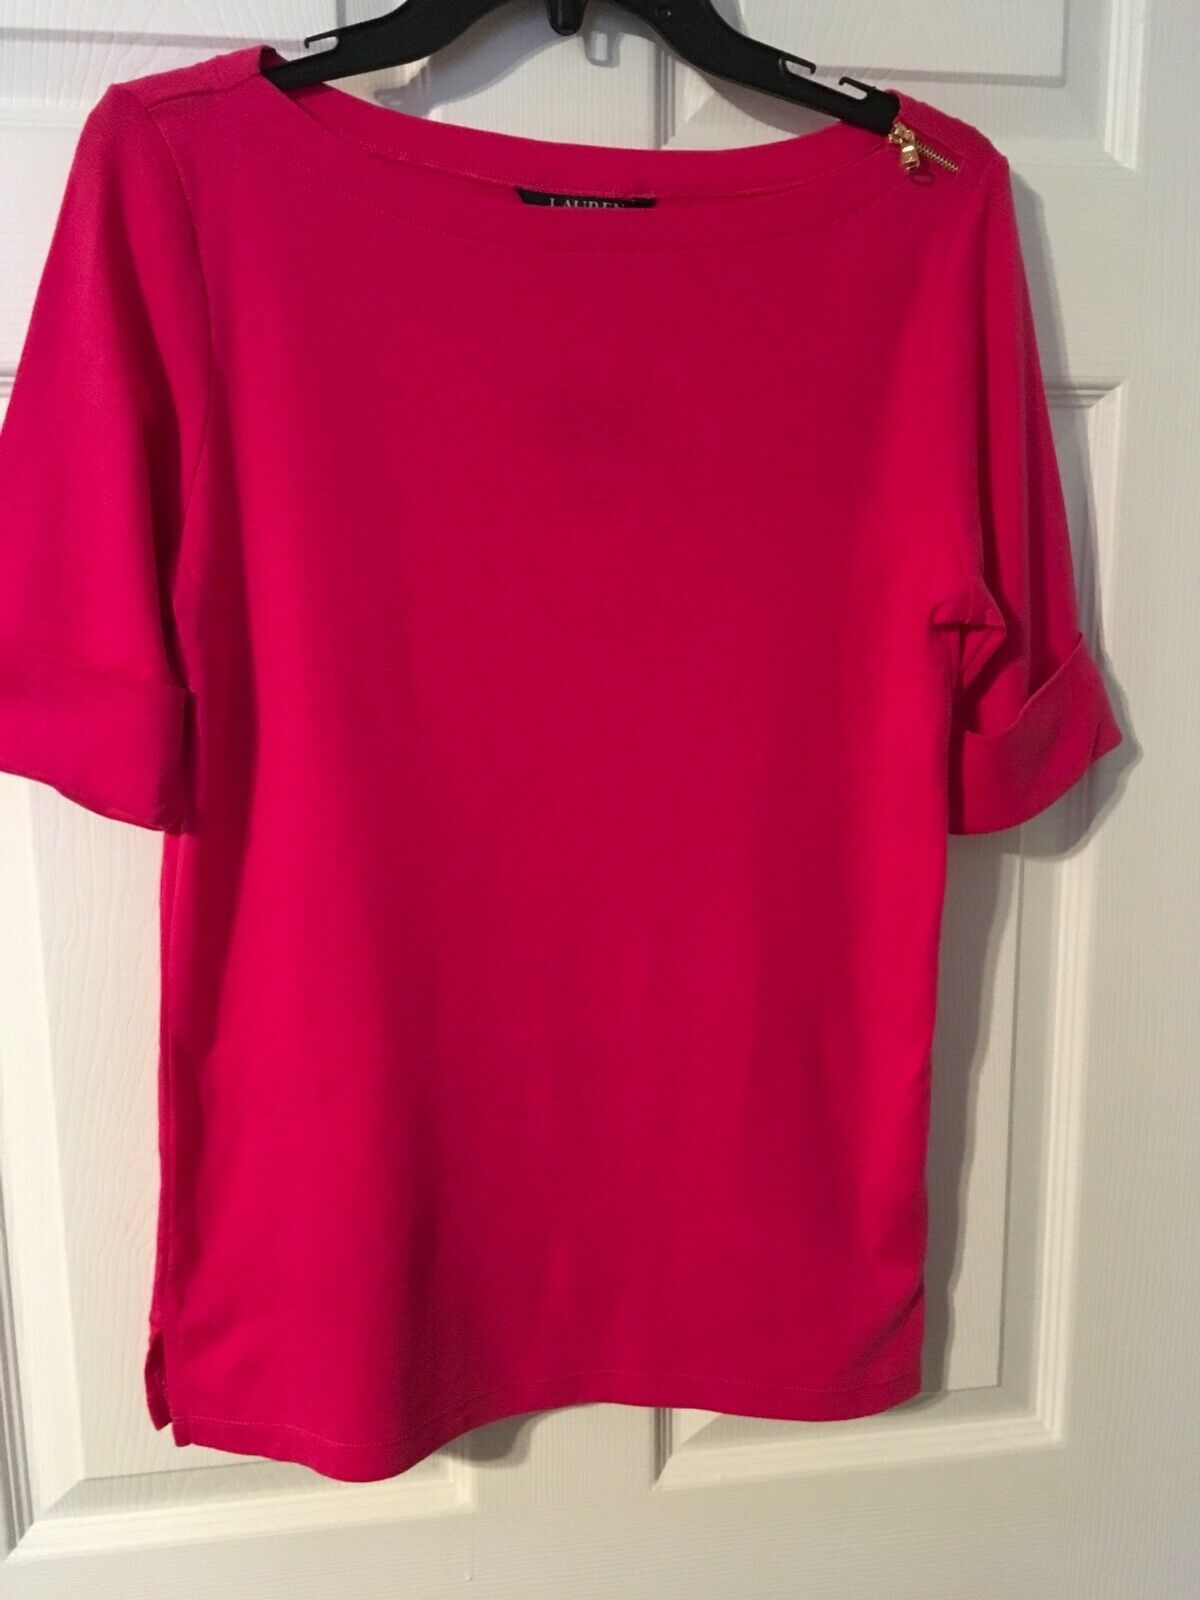 Ladies Ralph Lauren Hot Pink Short Sleeve Zipper Embellished Blouse